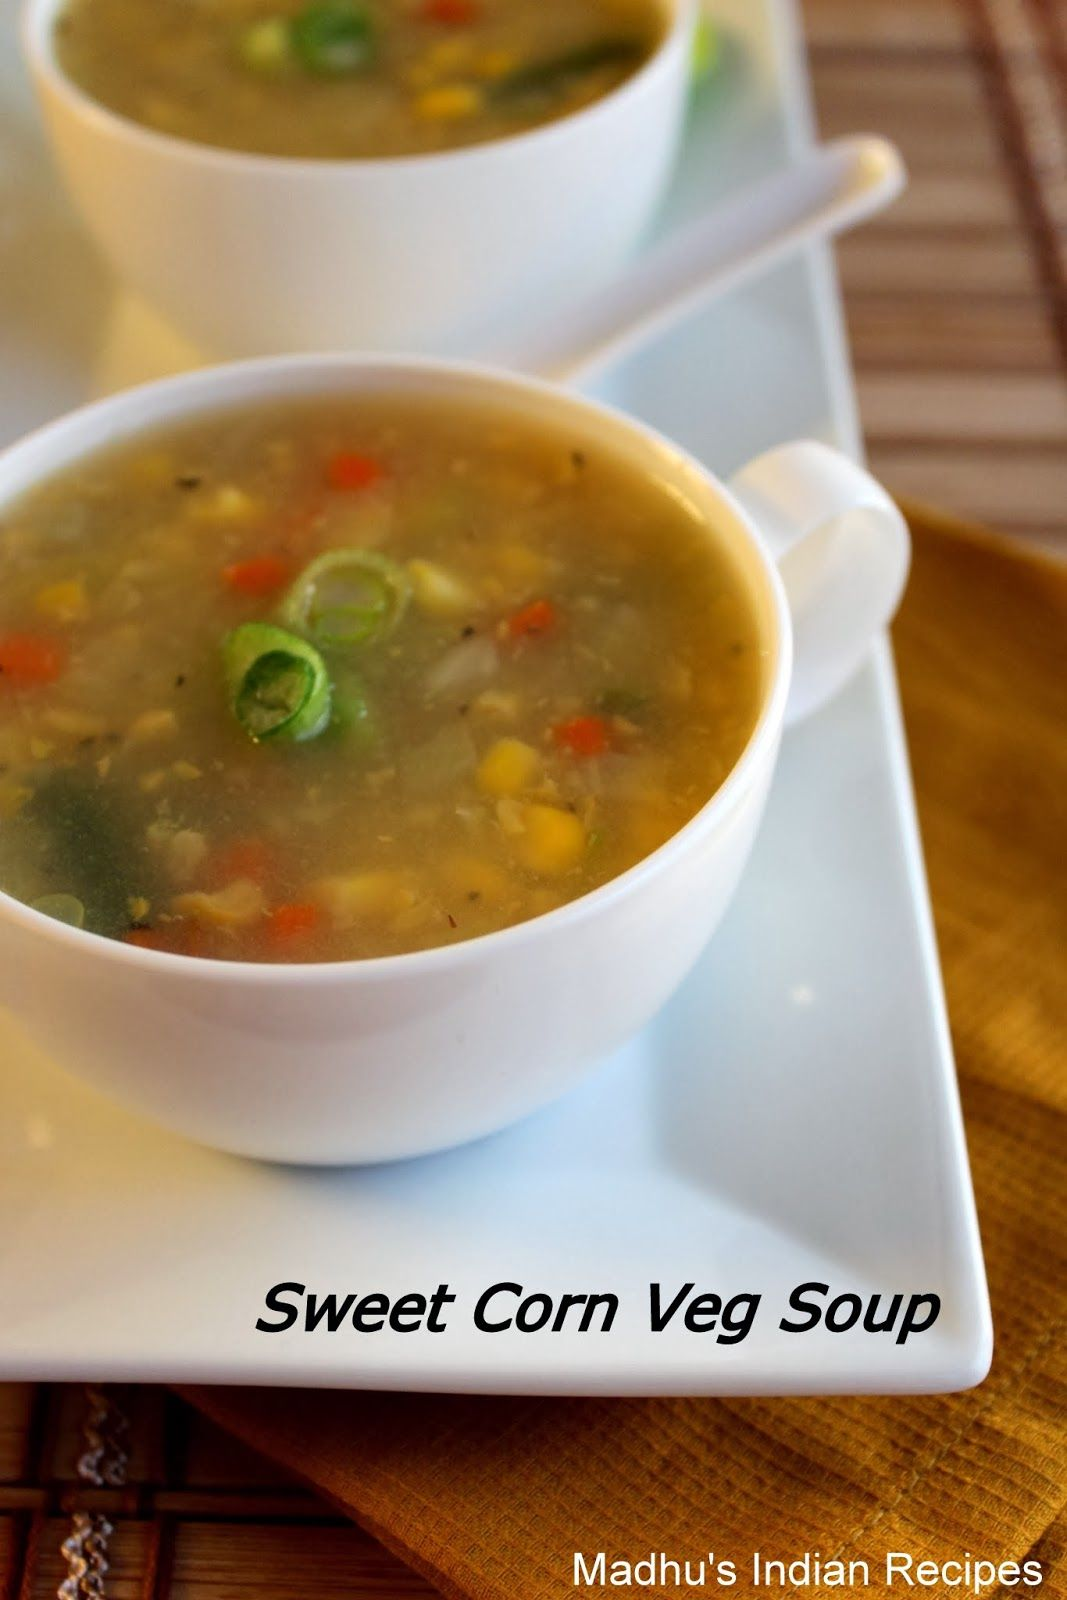 Madhus everyday indian indo chinese recipes sweet corn all recipes indo chinese recipes sweet corn vegetable soup recipe salads and soupschinese recipes how to make sweet corn soup forumfinder Image collections